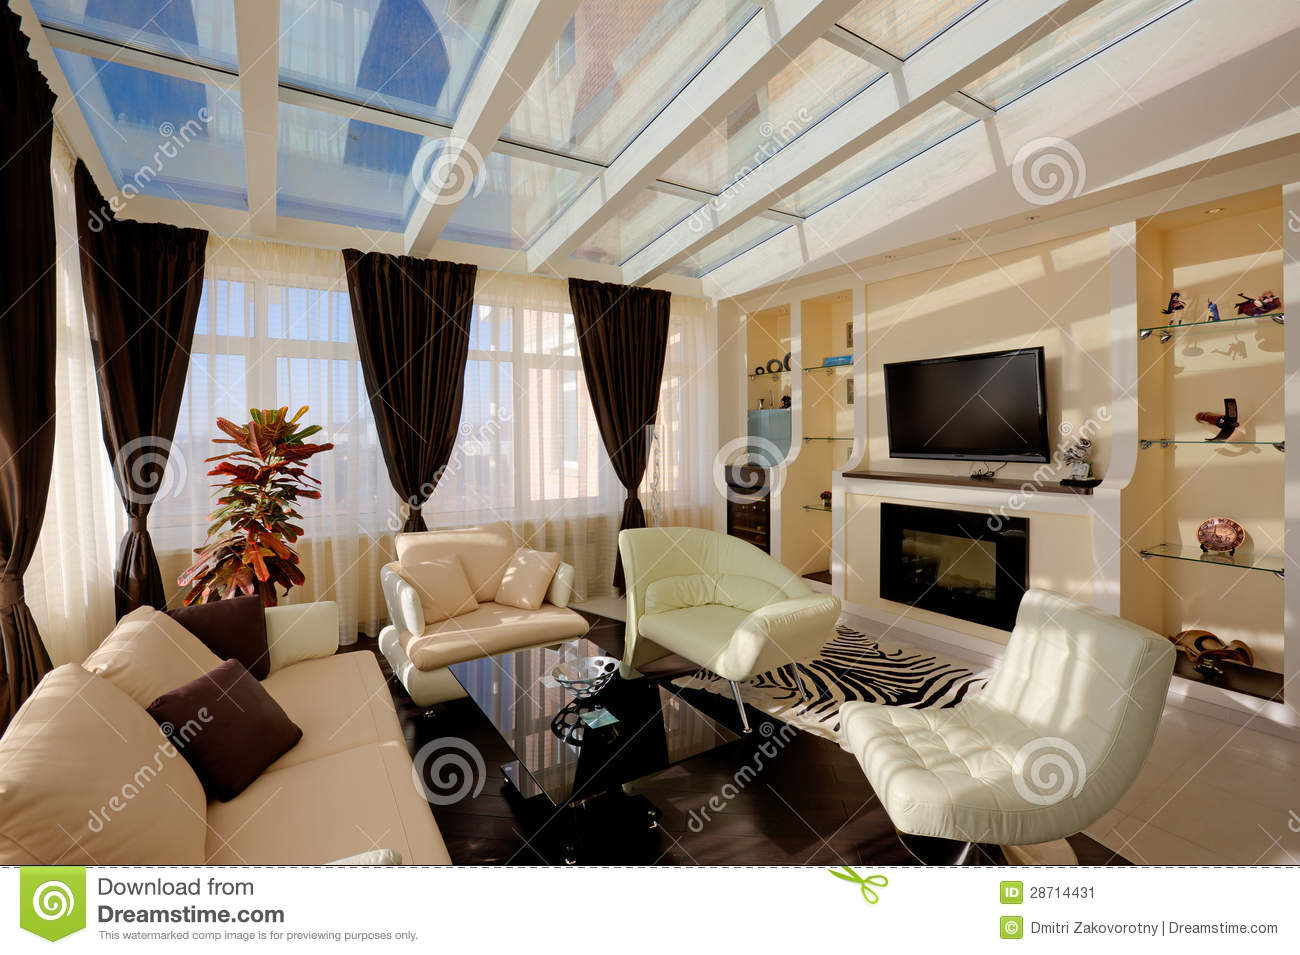 emejing image joli salon images awesome interior home satellite